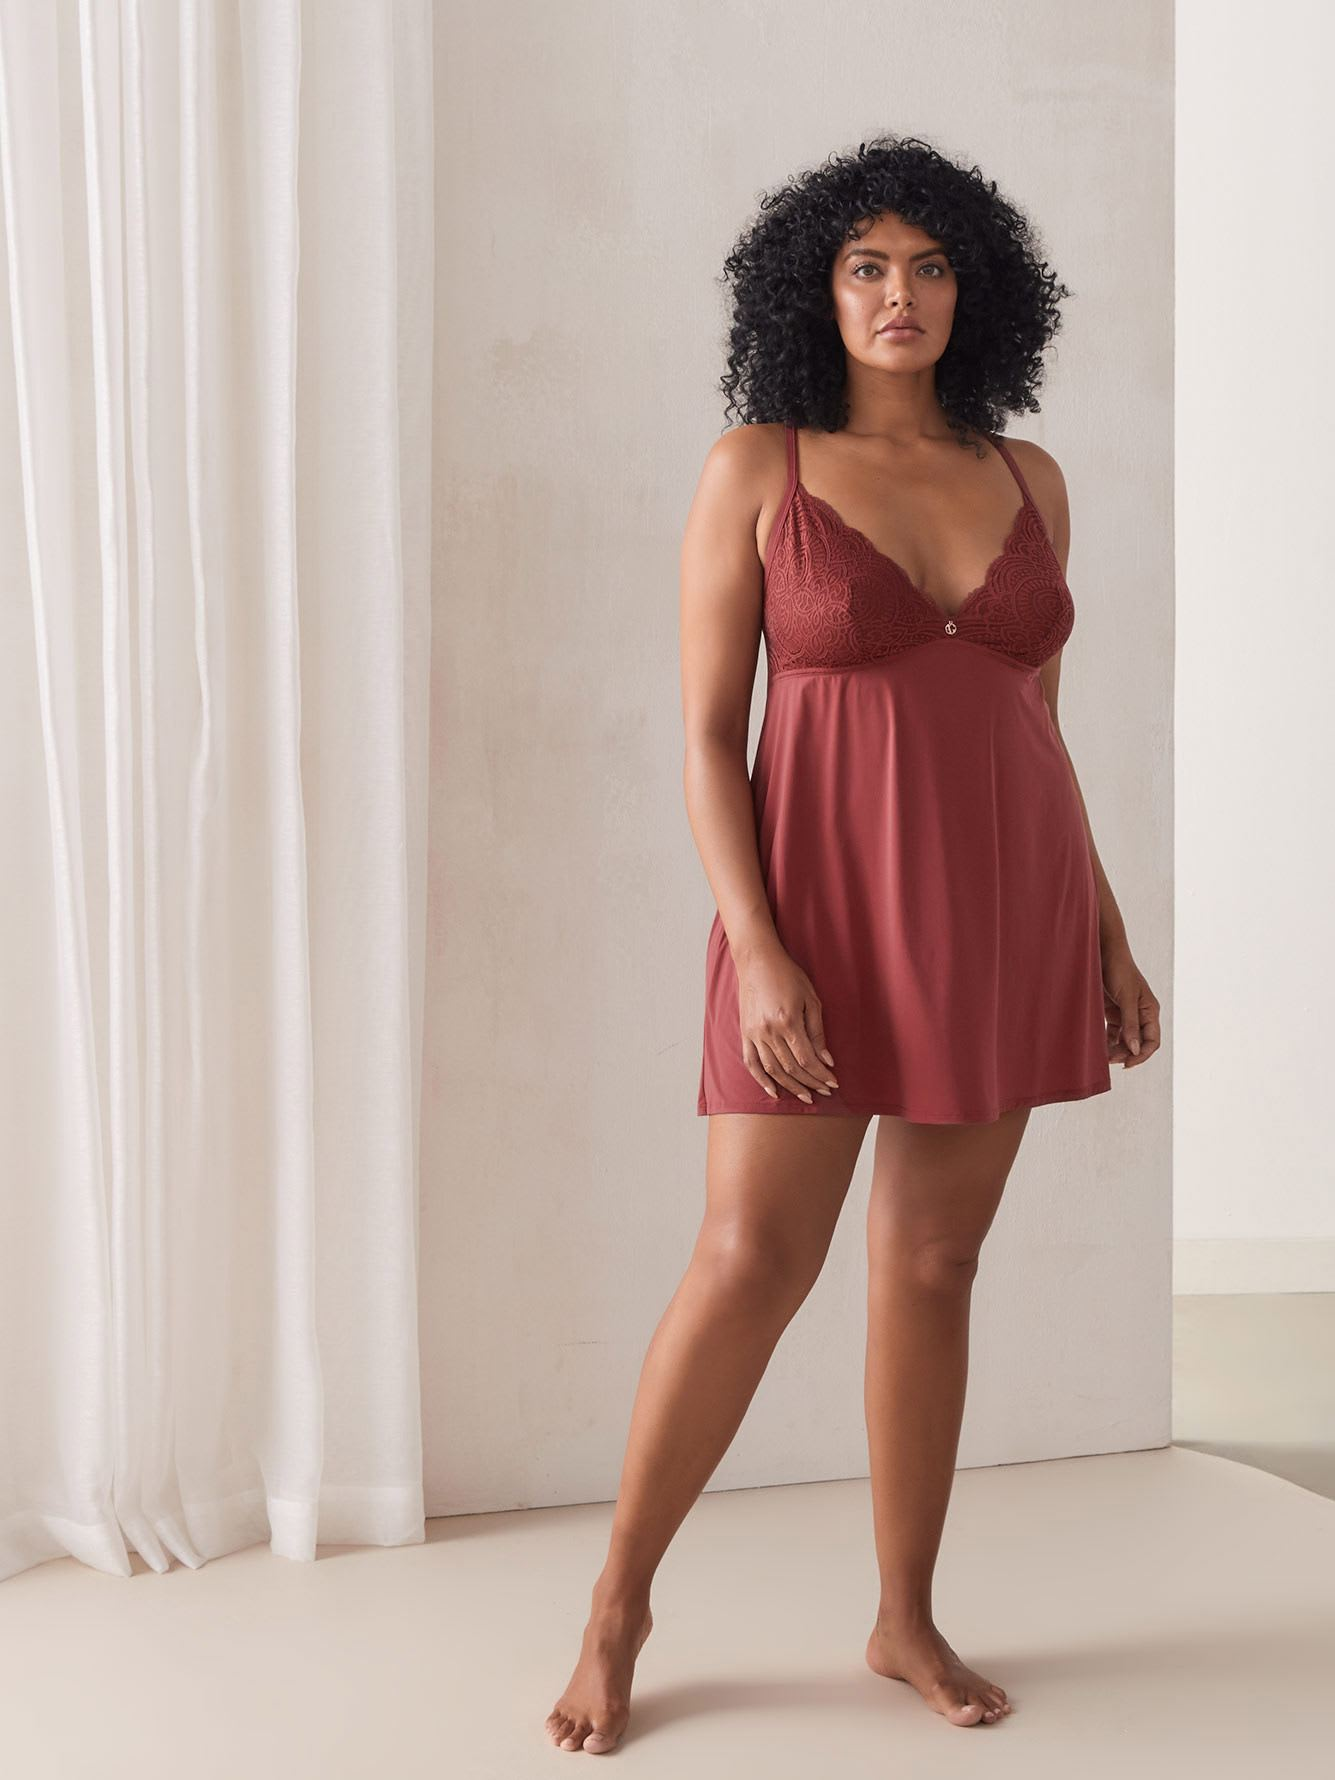 V-Neck Microfiber Babydoll with Lace - Ashley Graham